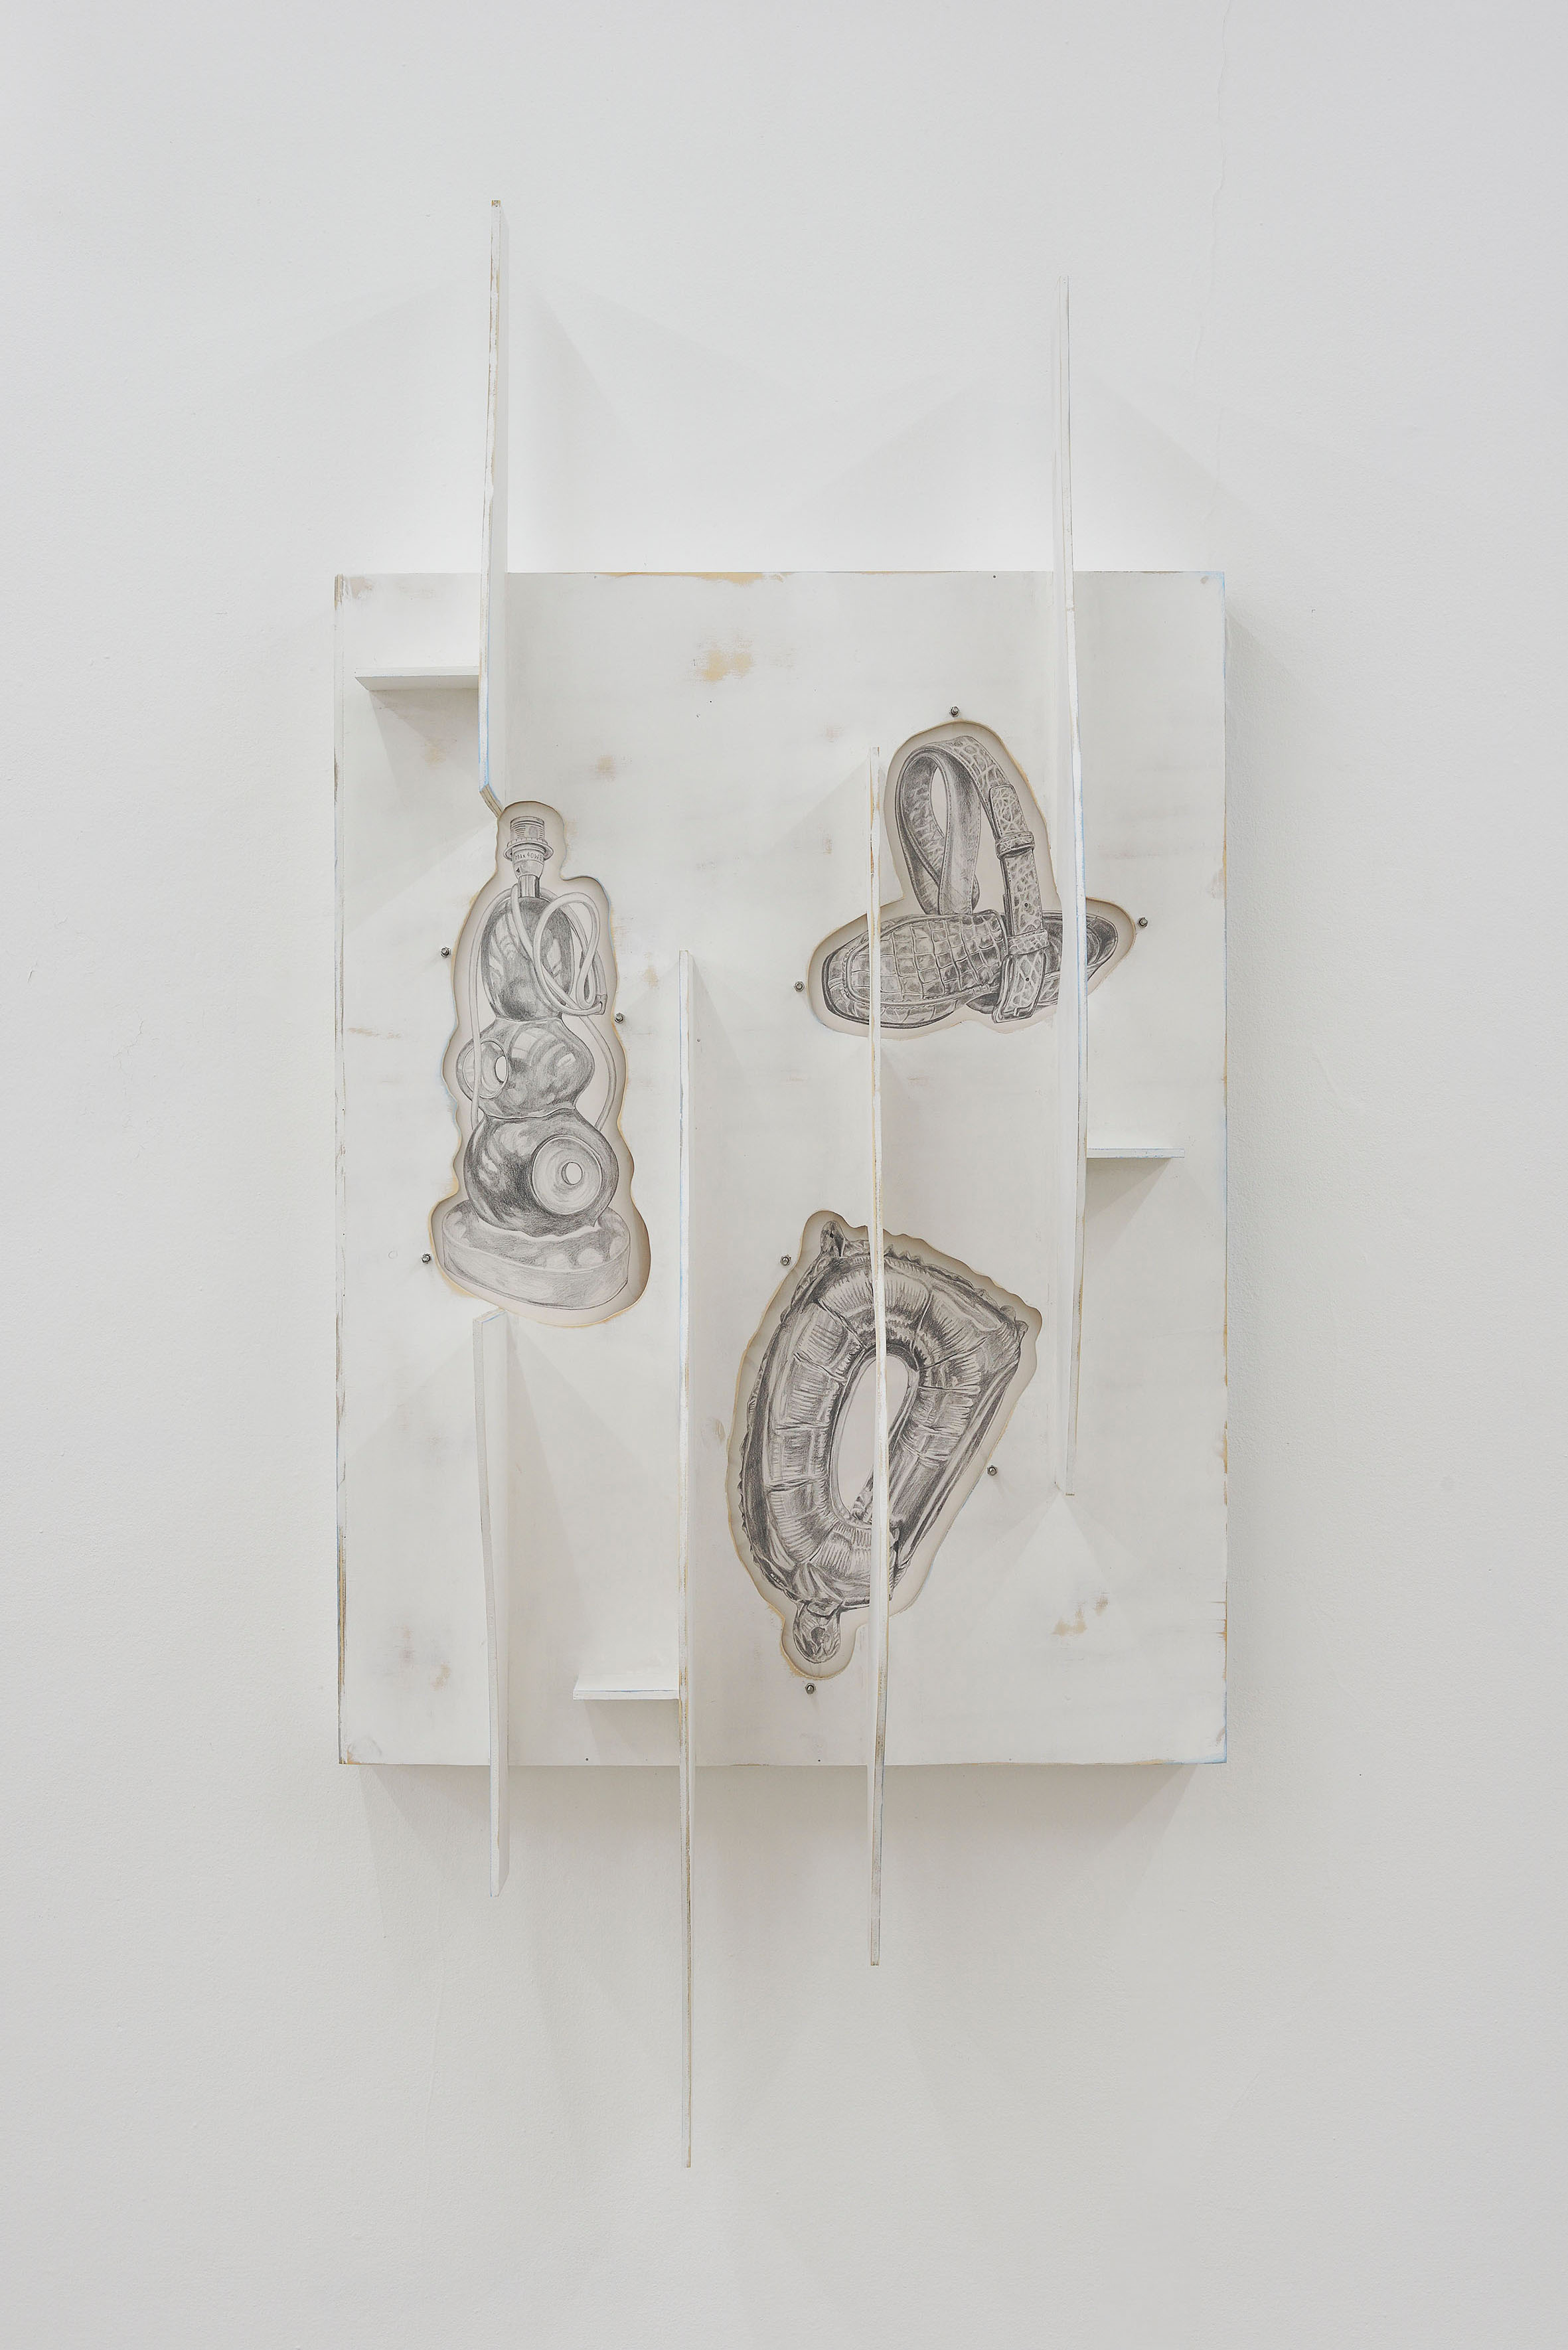 Milly Peck, Facciata II, 2021. Paint on plywood, perspex, chalk, pencil on paper, bolts, magnets. 201 x 91 x 37 cm. Photographer: Roberto Apa.